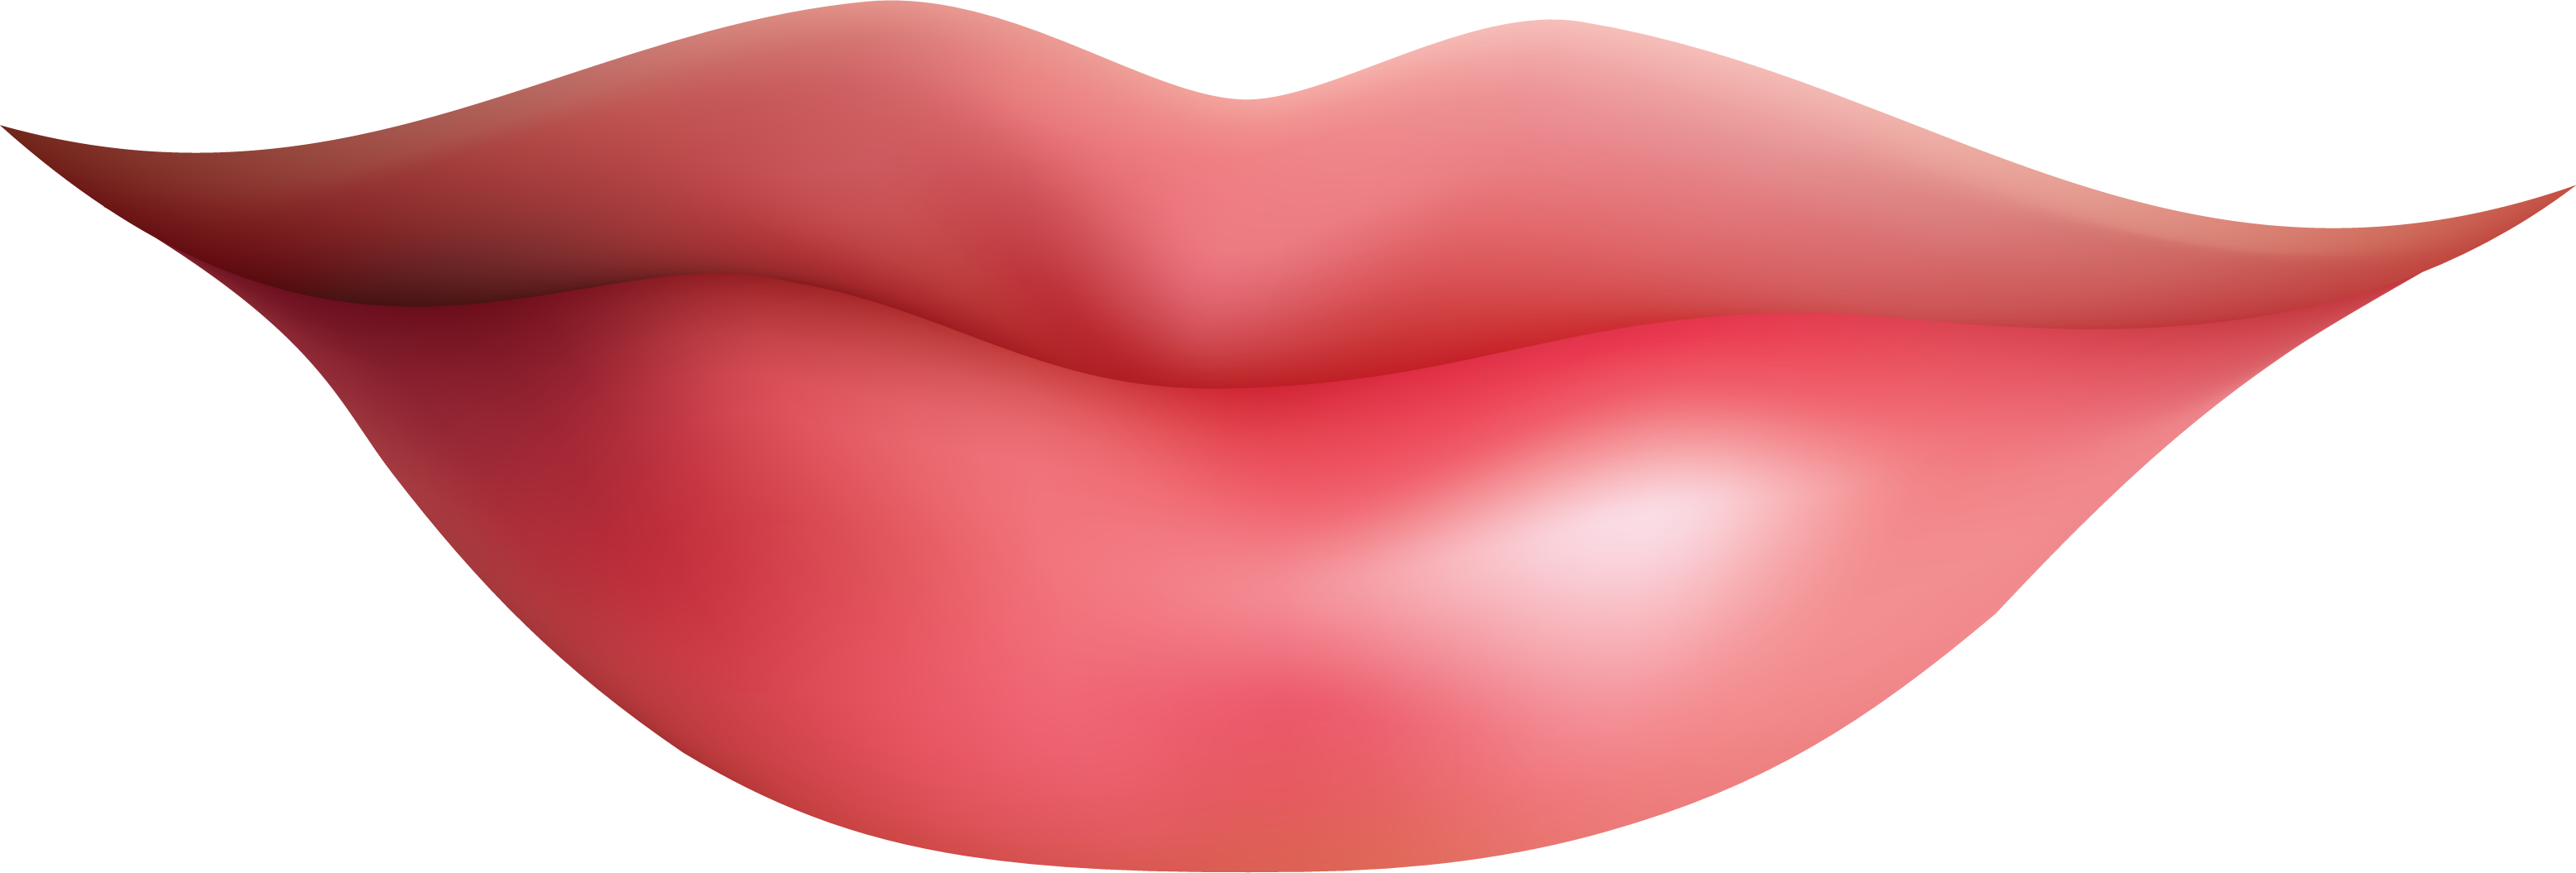 Clipart lips clipart image 9 - Lips Clip Art